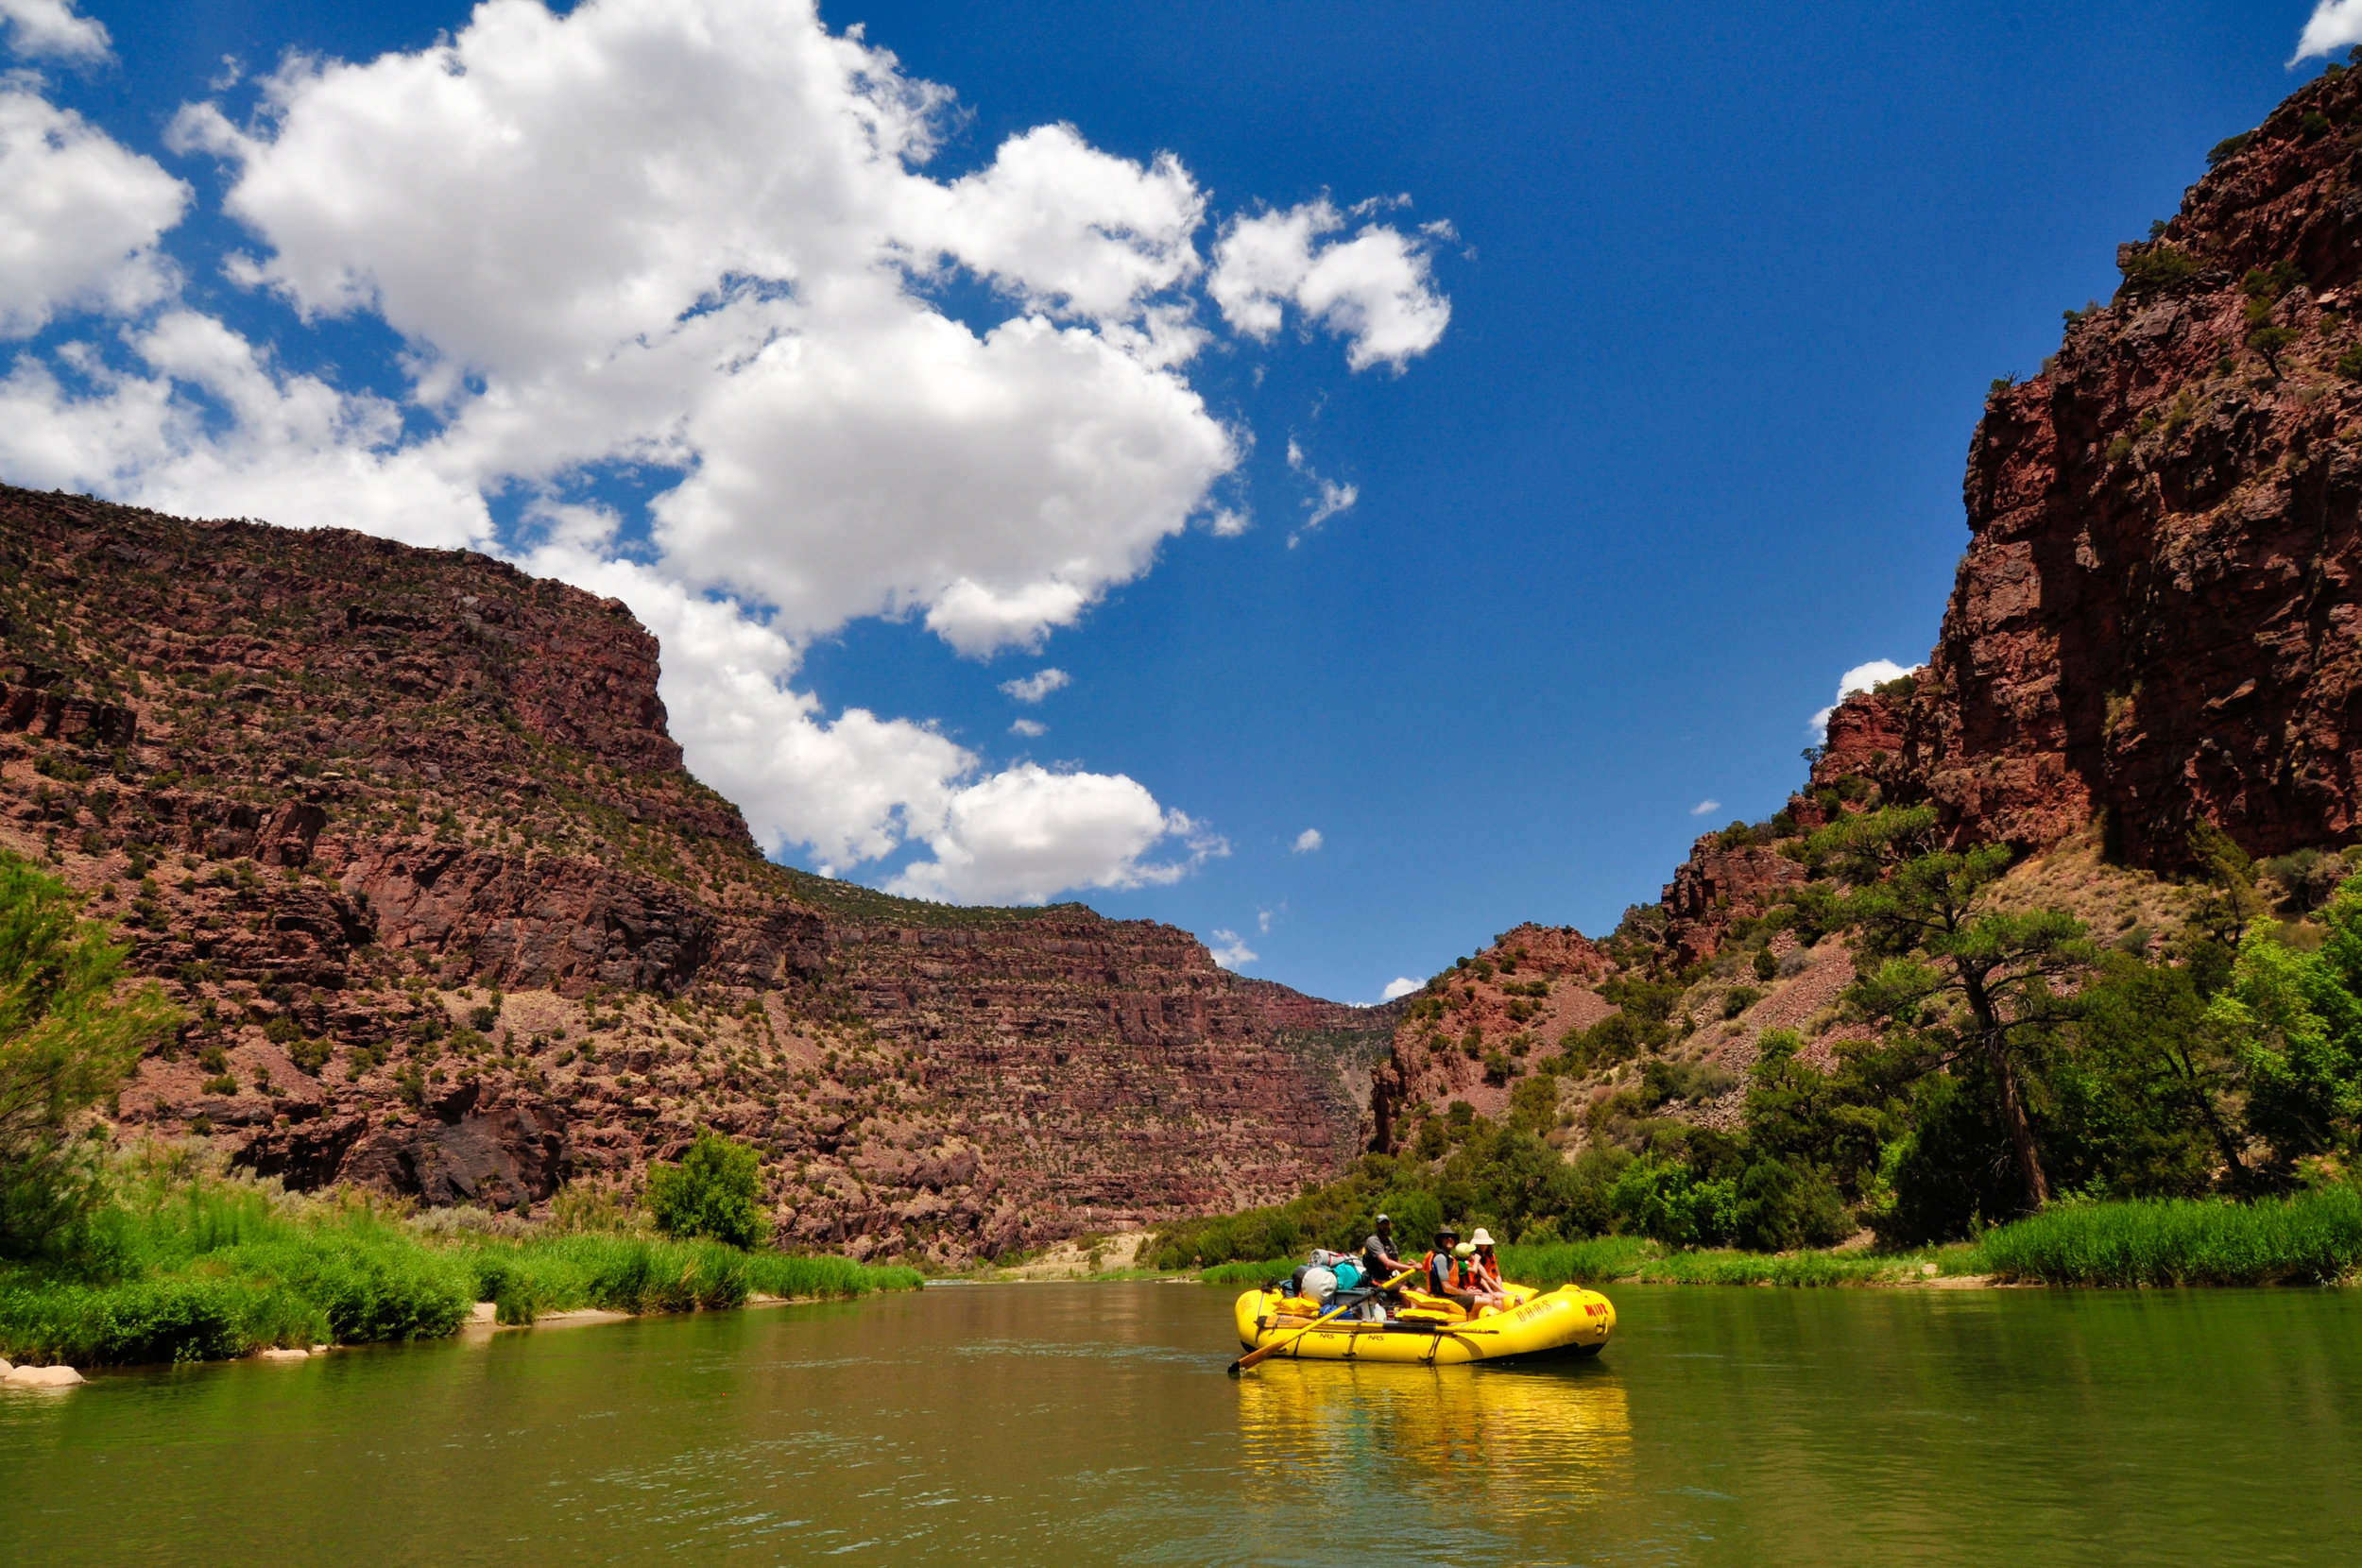 Rafting the Green River - 3-5 days